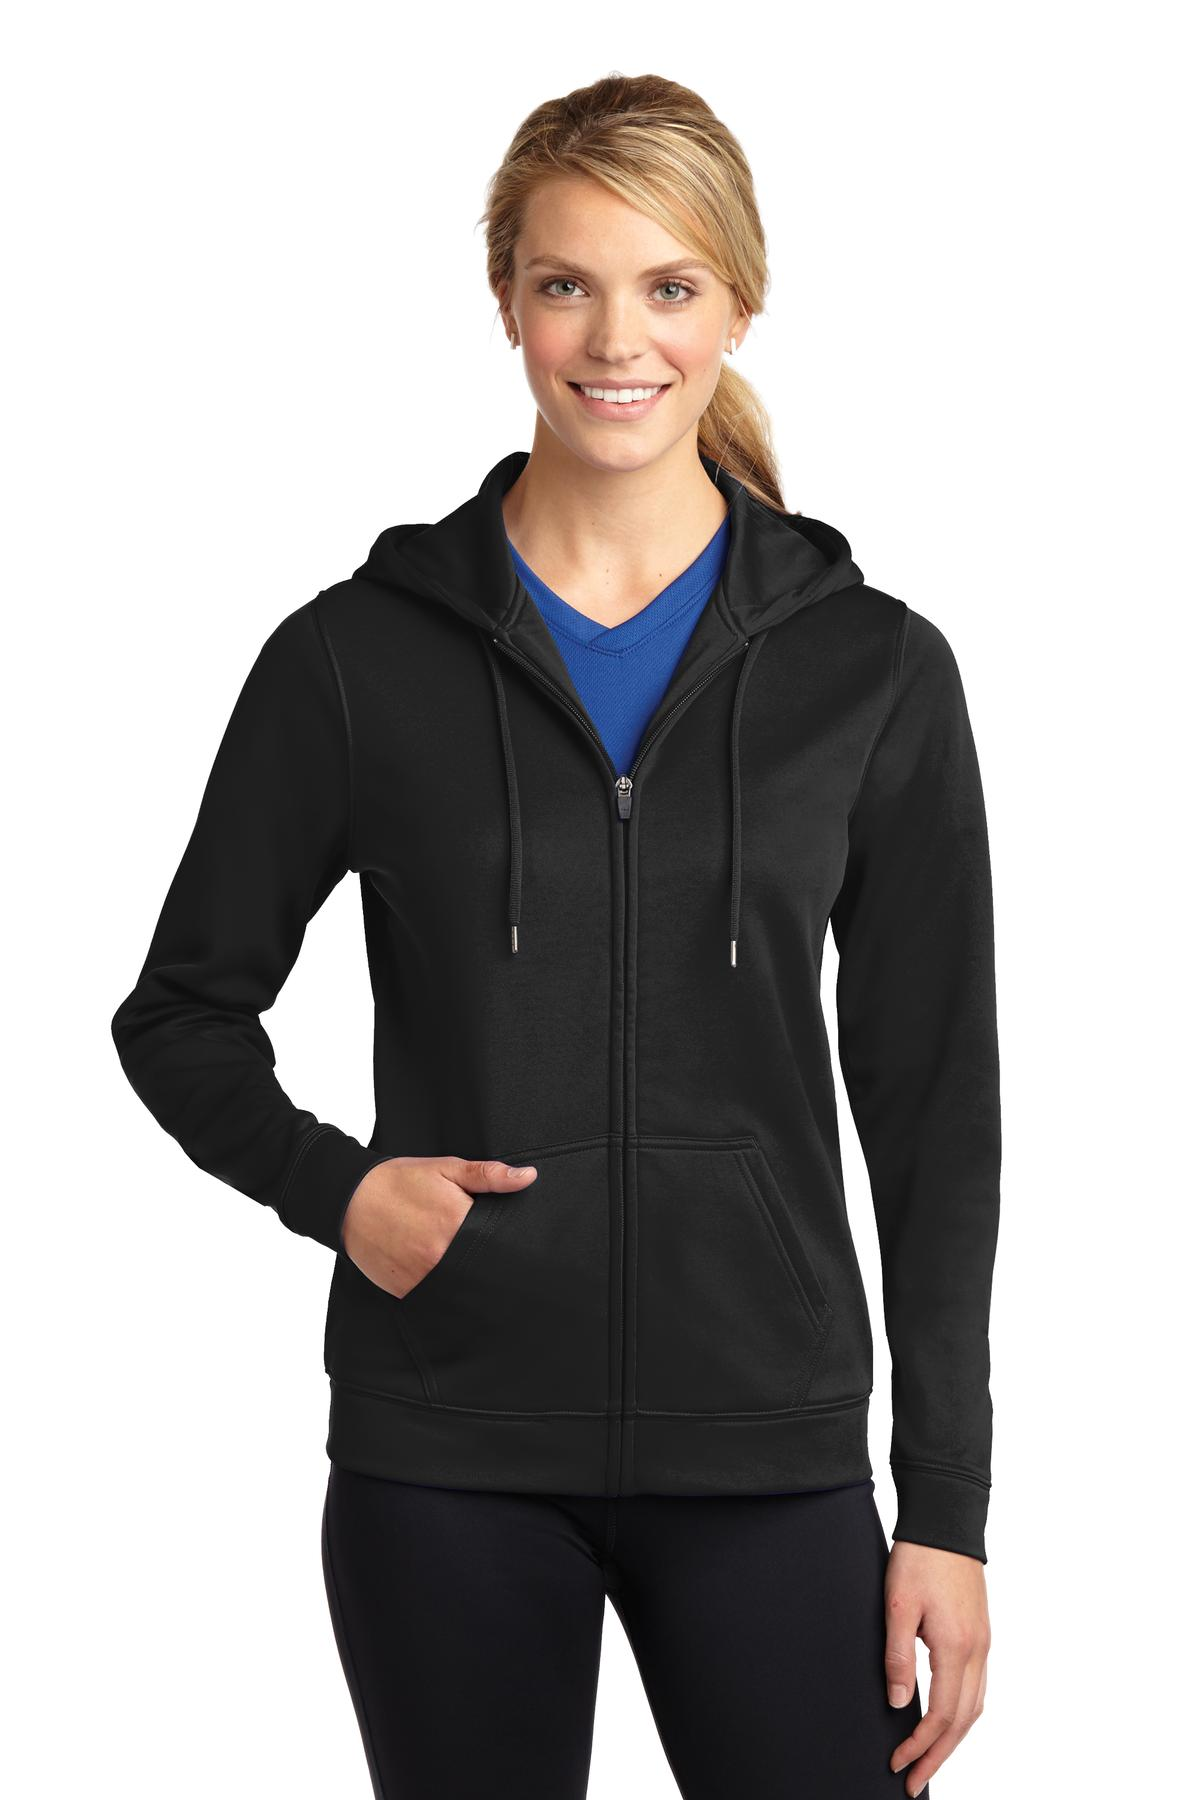 Sport-Tek ®  Ladies Sport-Wick ®  Fleece Full-Zip Hooded Jacket. LST238 - Black